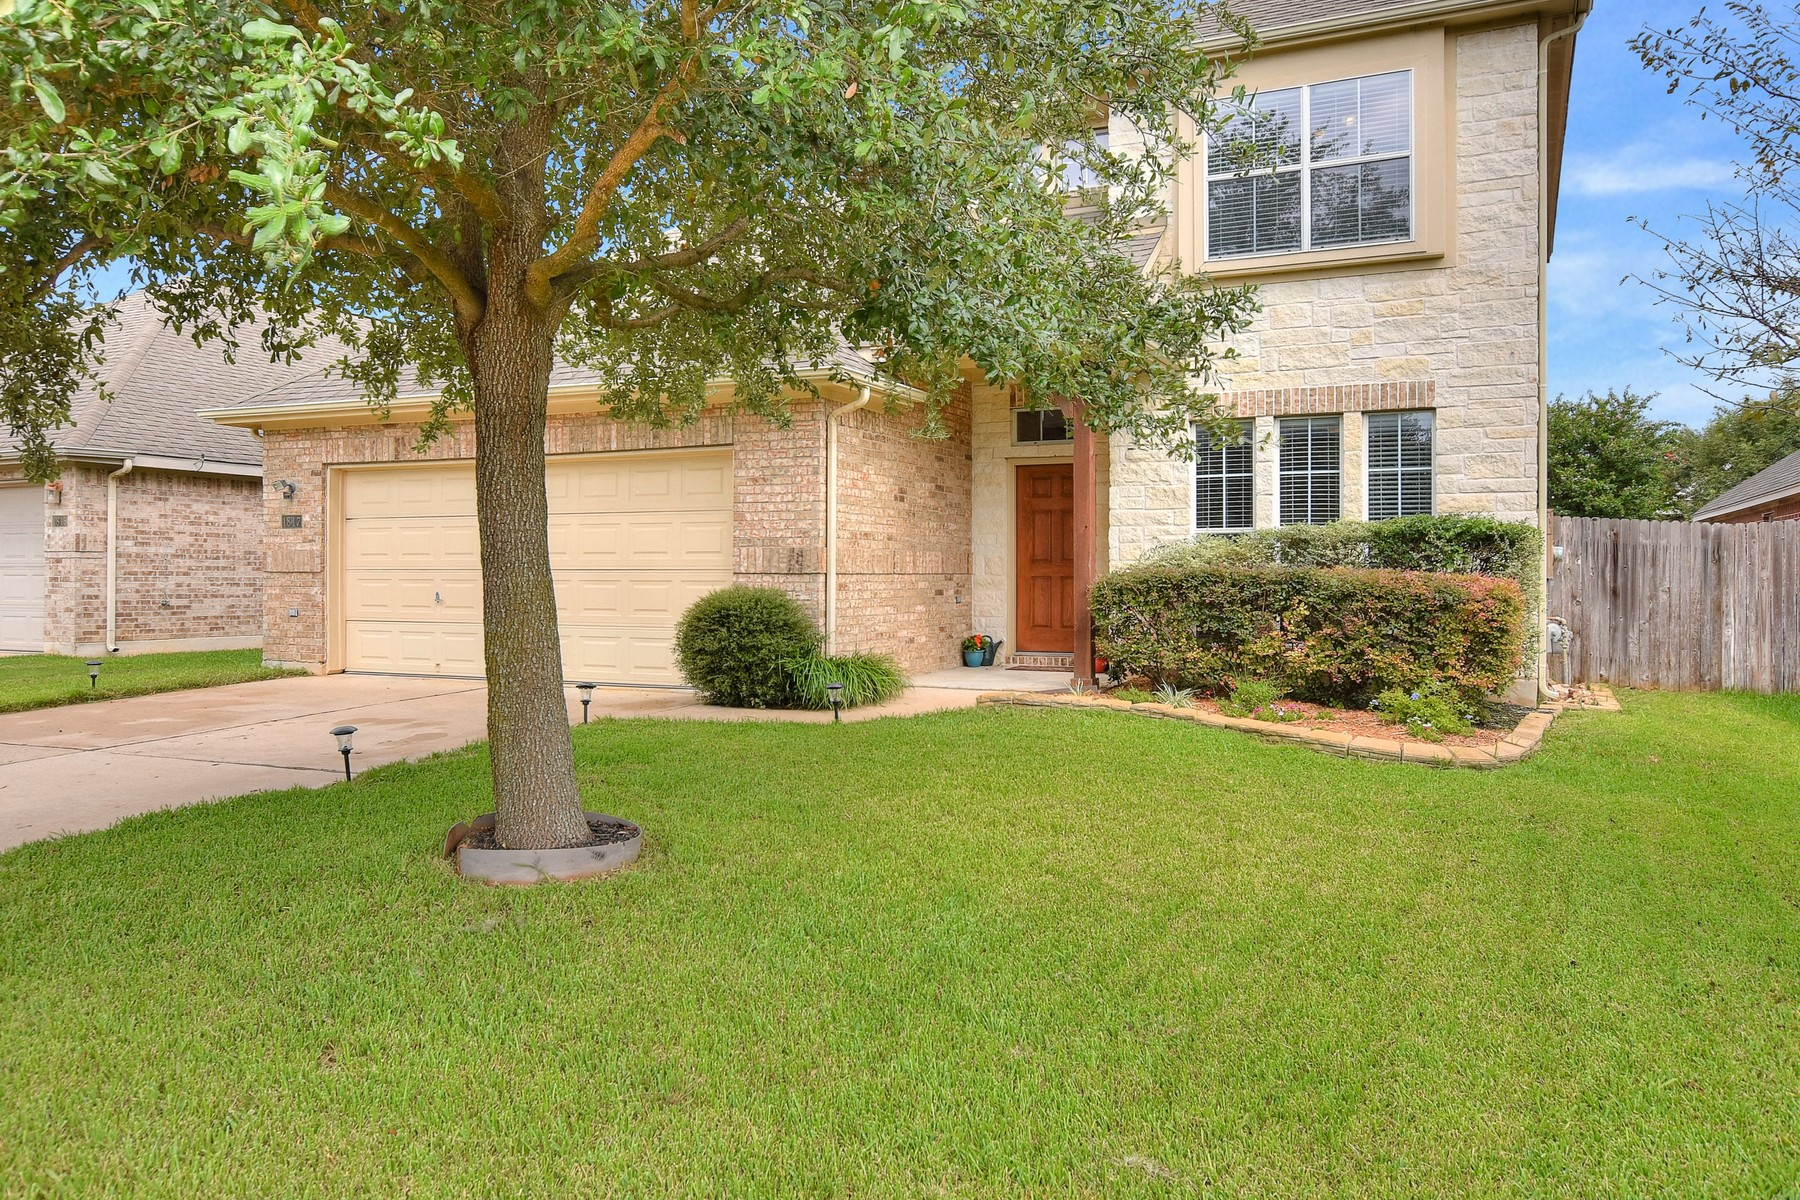 Vivienda unifamiliar por un Venta en Spacious Home Loaded with Charm and Character 1817 Nelson Ranch Loop Cedar Park, Texas 78613 Estados Unidos